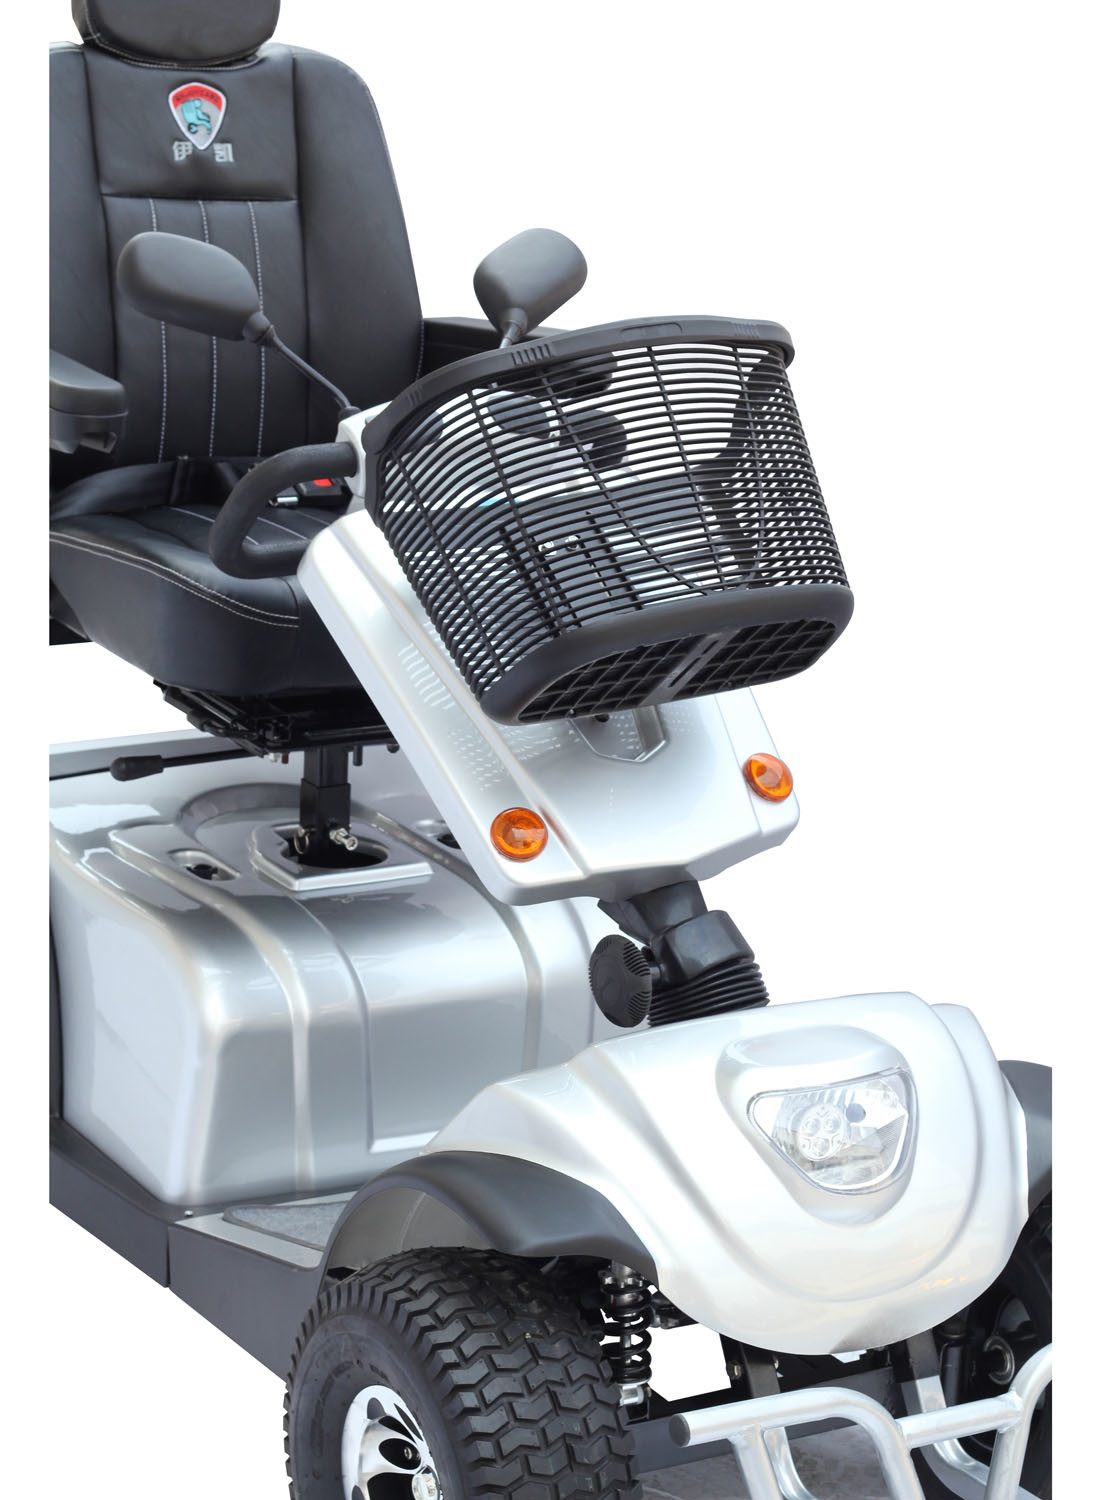 Mobility Scooter For Handicapped Eml49a Manufacturers